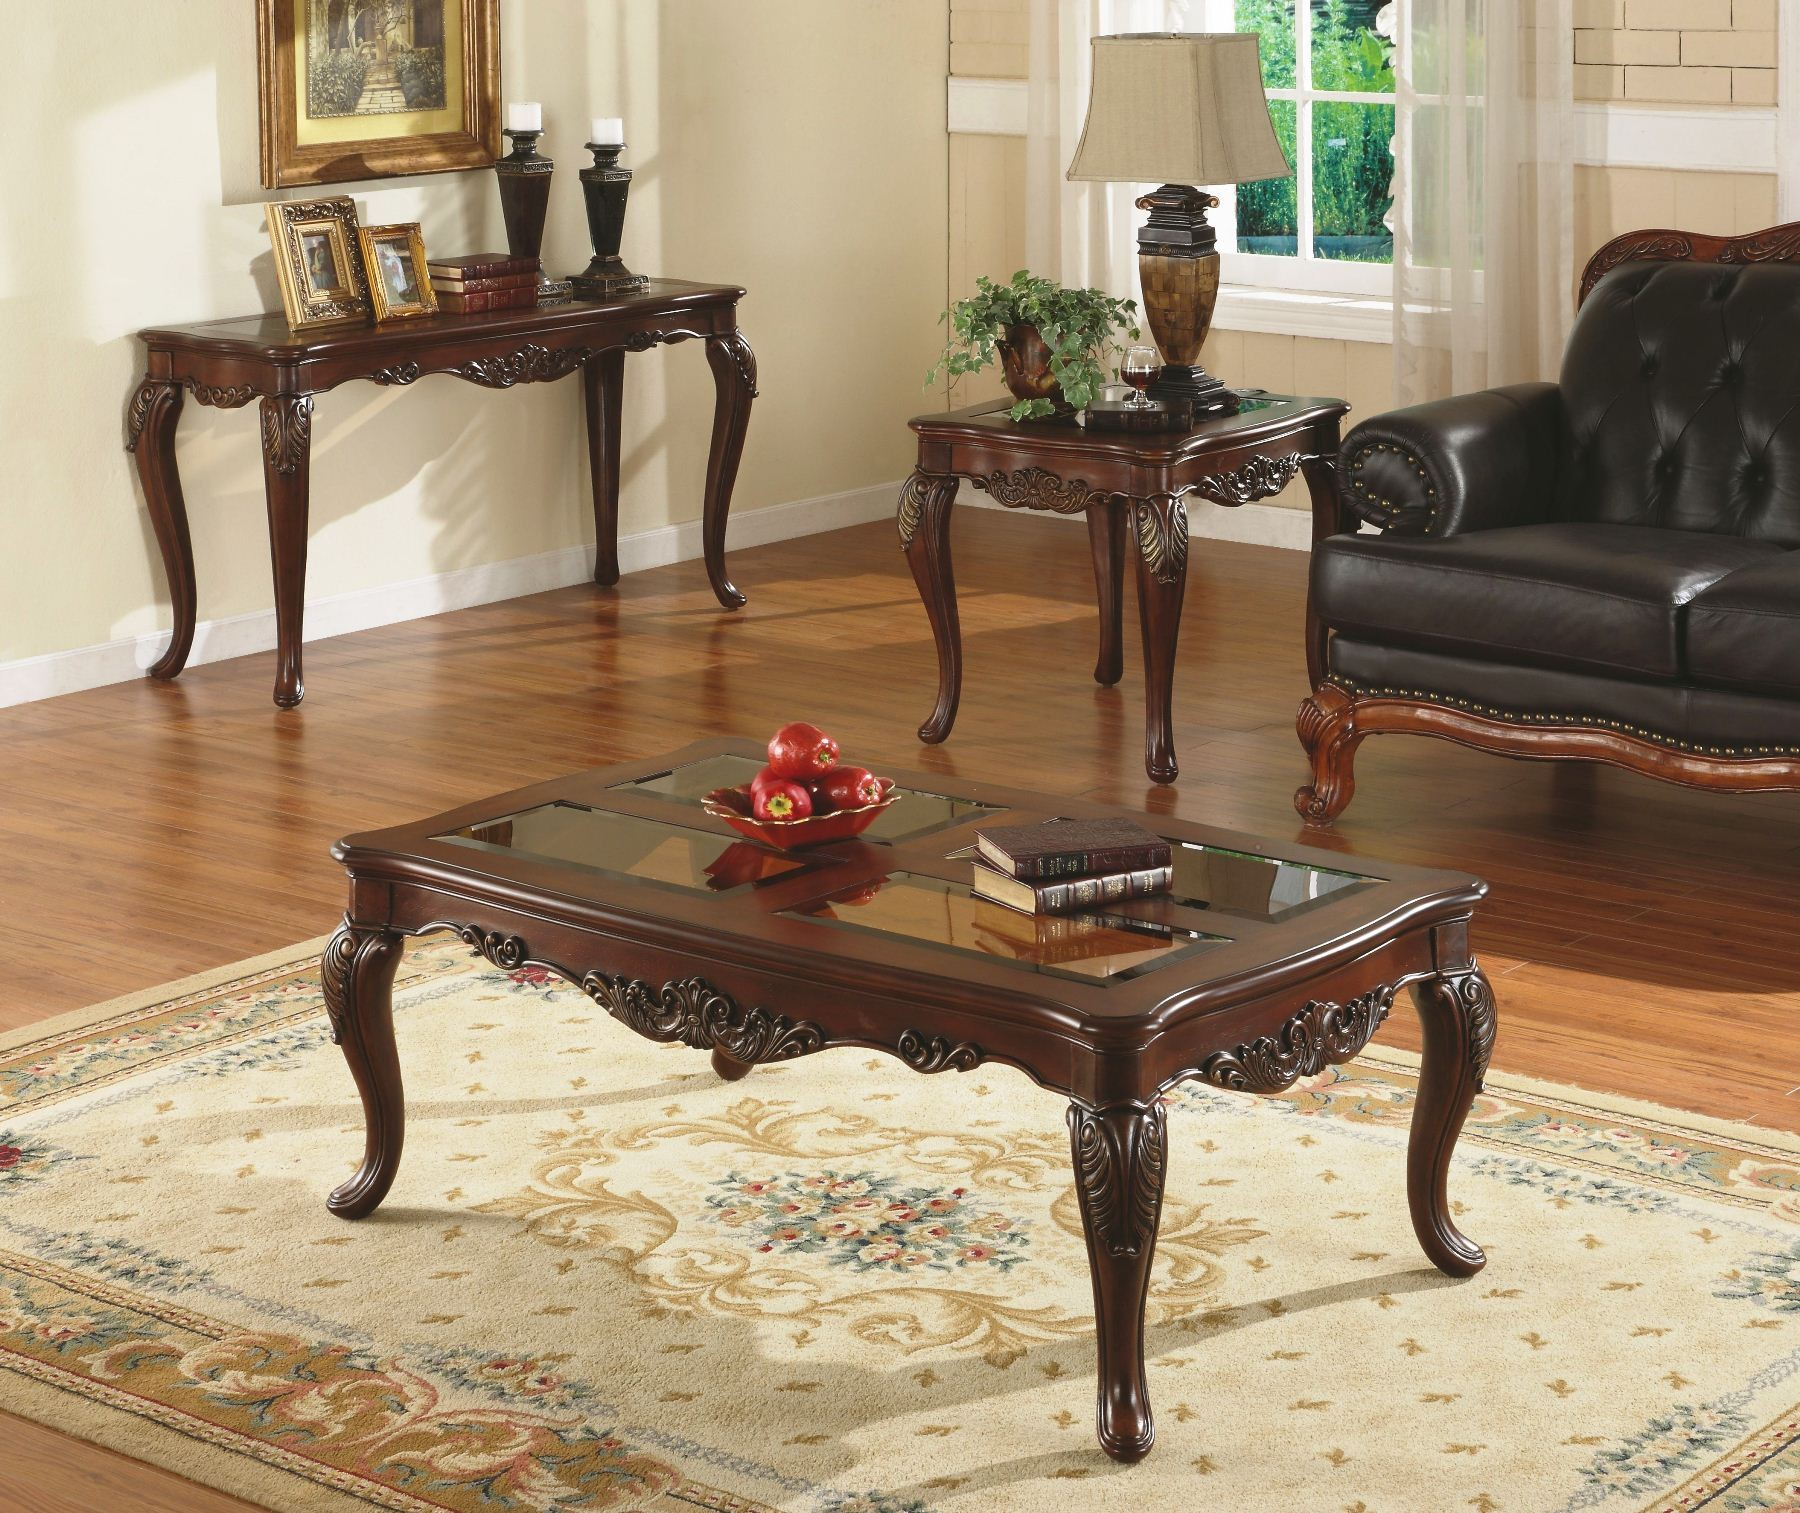 Wood St Martin Coffee Table: Ella Martin Occasional Table Set From Homelegance (1288